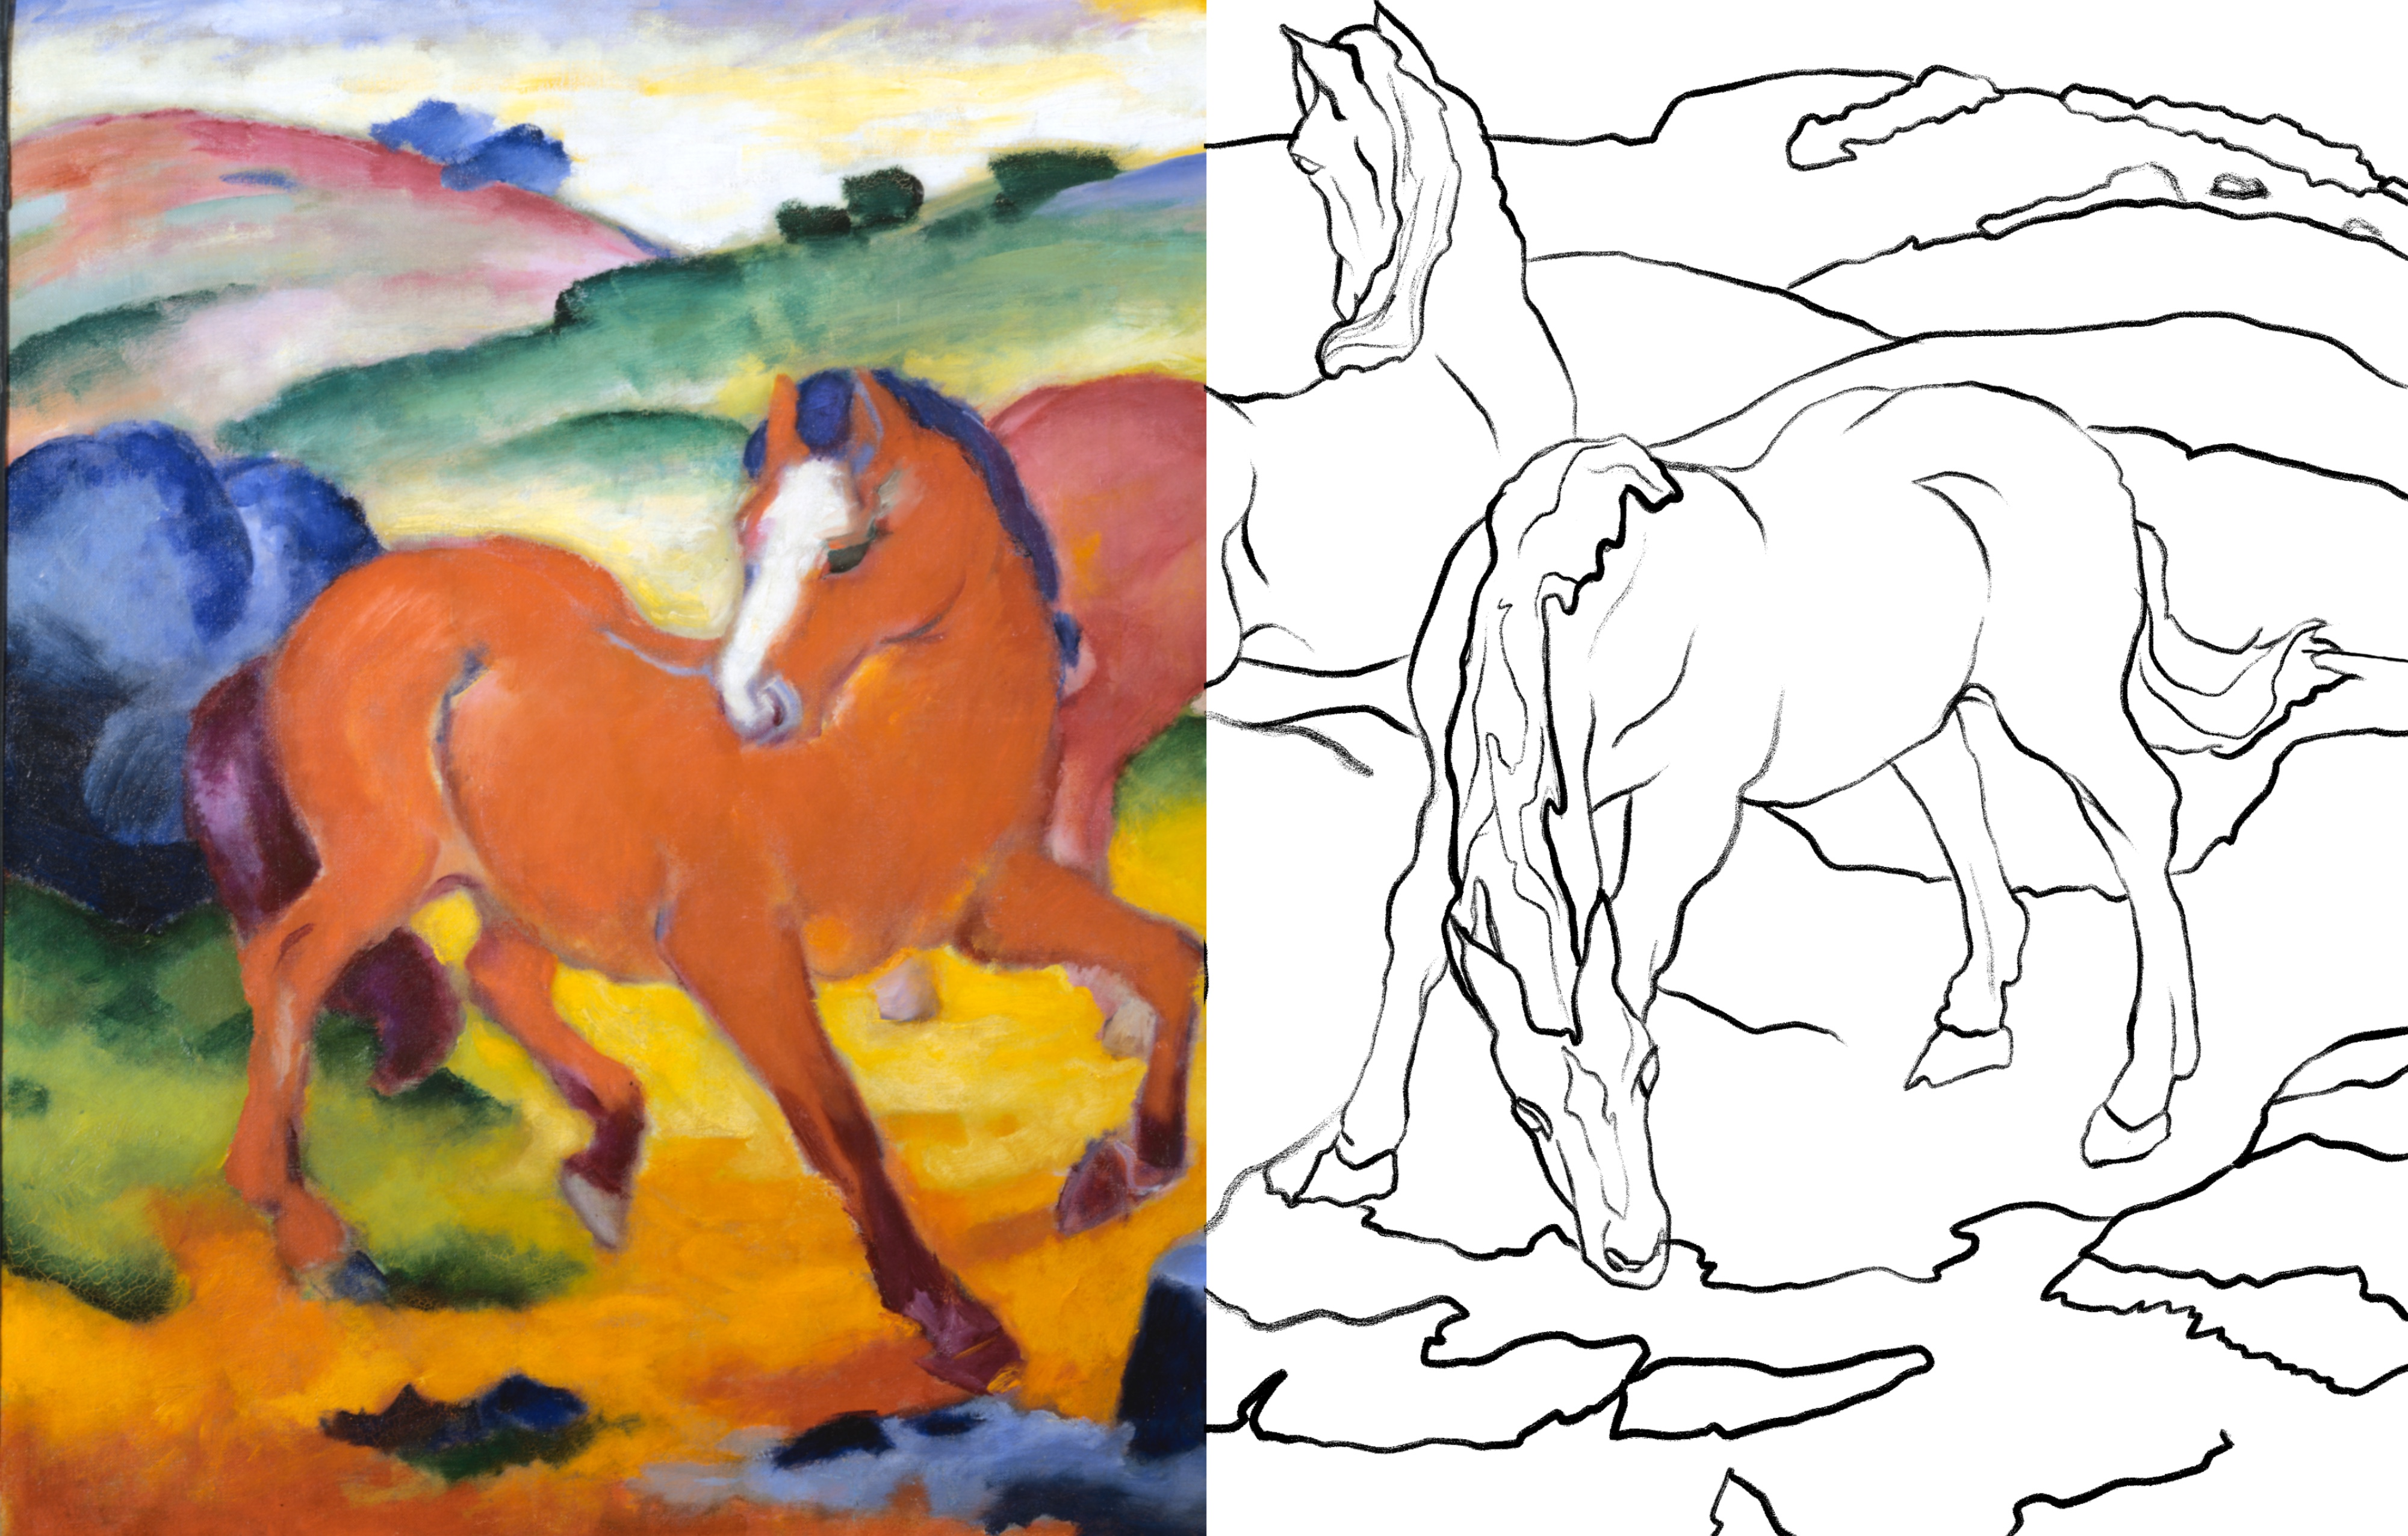 This composite image shows three horses grazing in the rolling hills of an open pasture. The left half of the image, which shows a horse in the foreground and part of another horse, is a full-color painting. The horses are reddish in color, and the surrounding landscape includes greens, reds, and blues. The image continues on the right side in black and white outline and shows the rest of one horse and another one leaning down to eat grass.